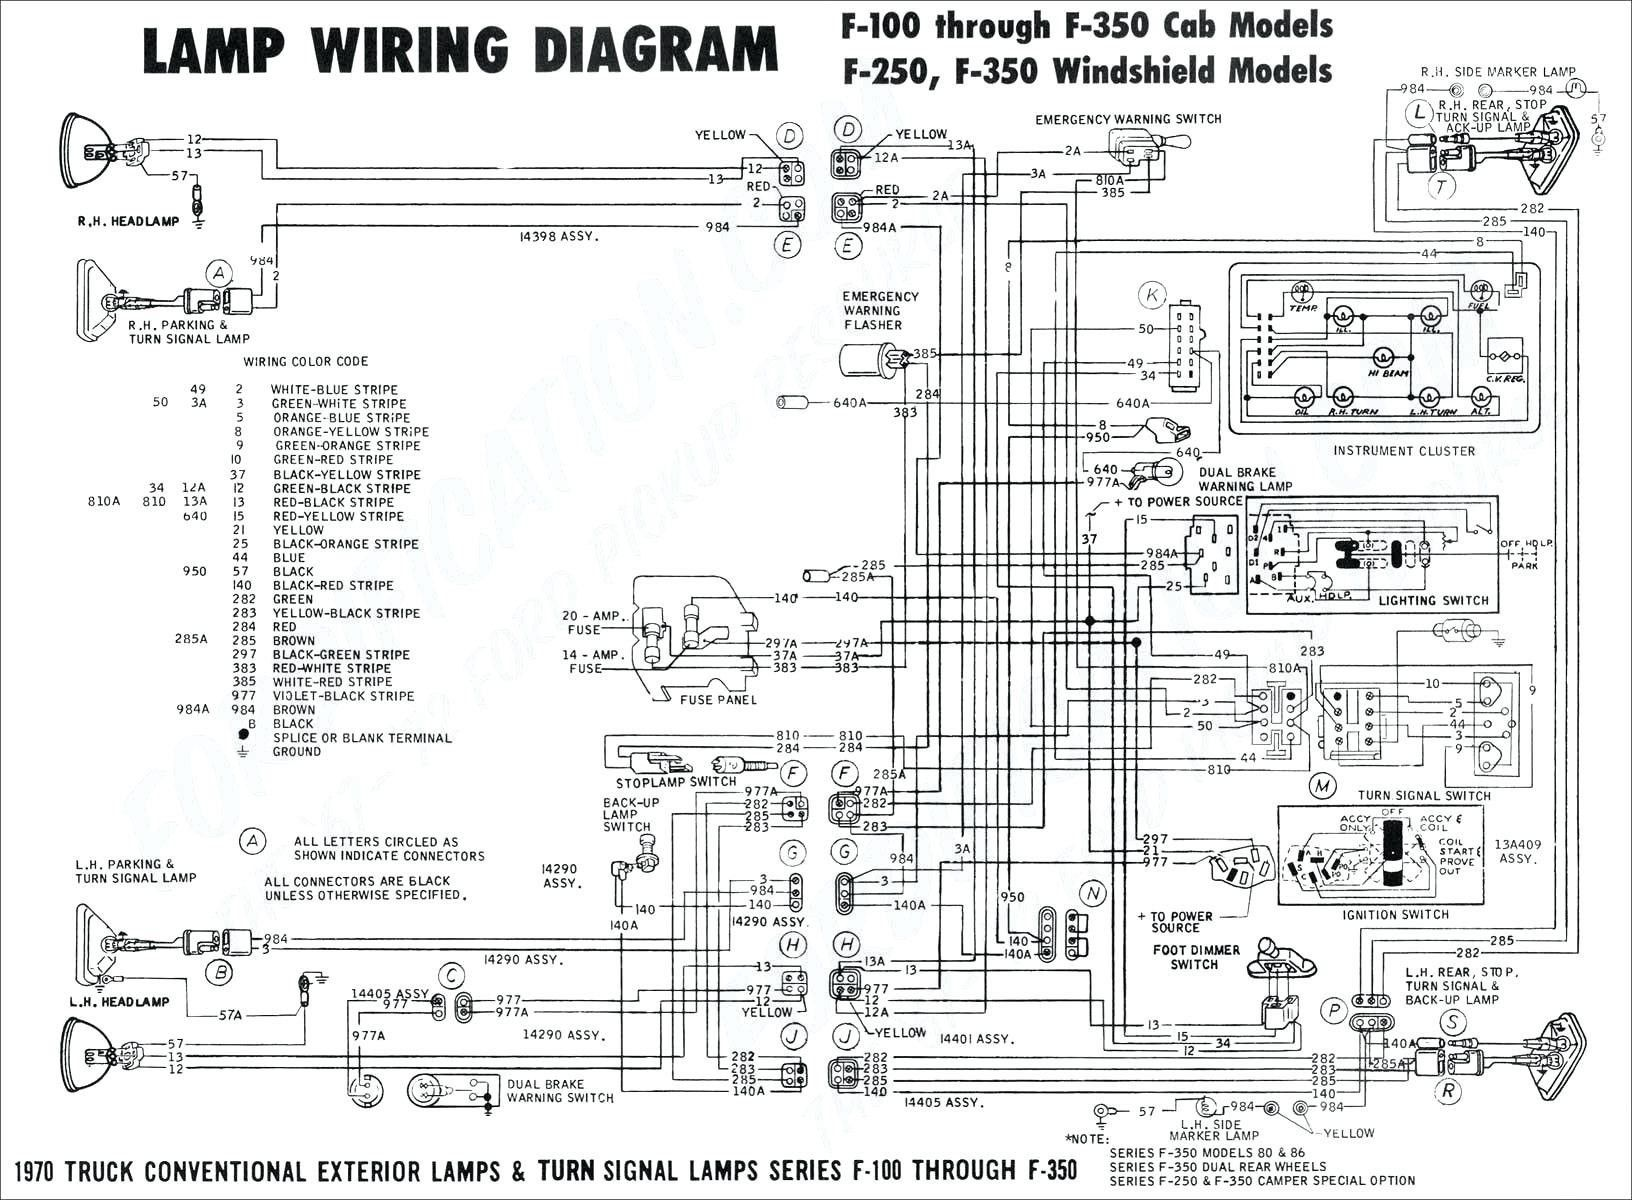 Pin Di Wiring Cable